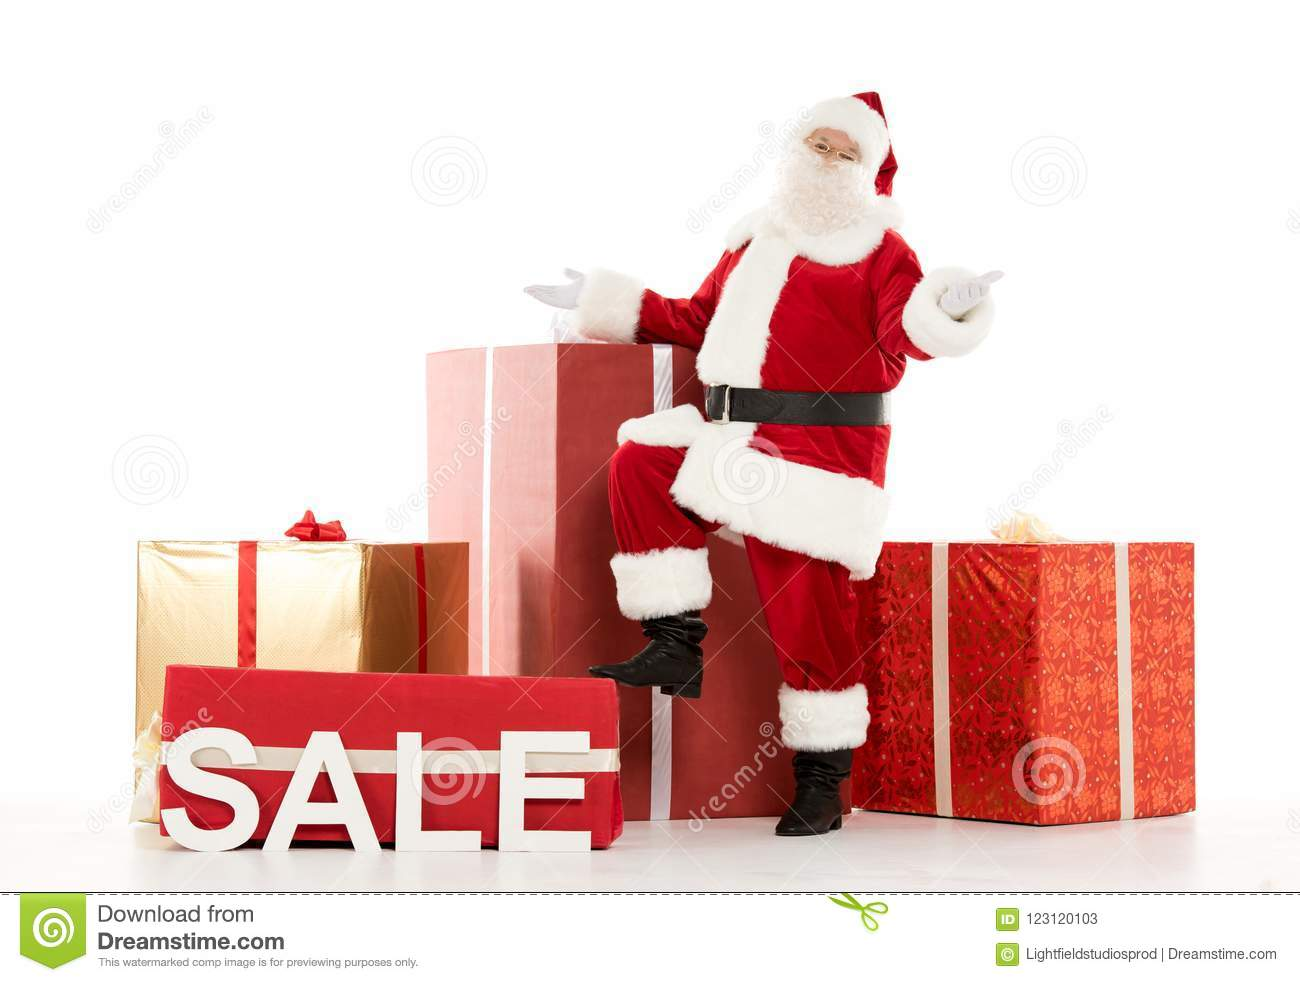 Happy Santa Claus With Sale Sign Stock Image - Image of celebrate ...